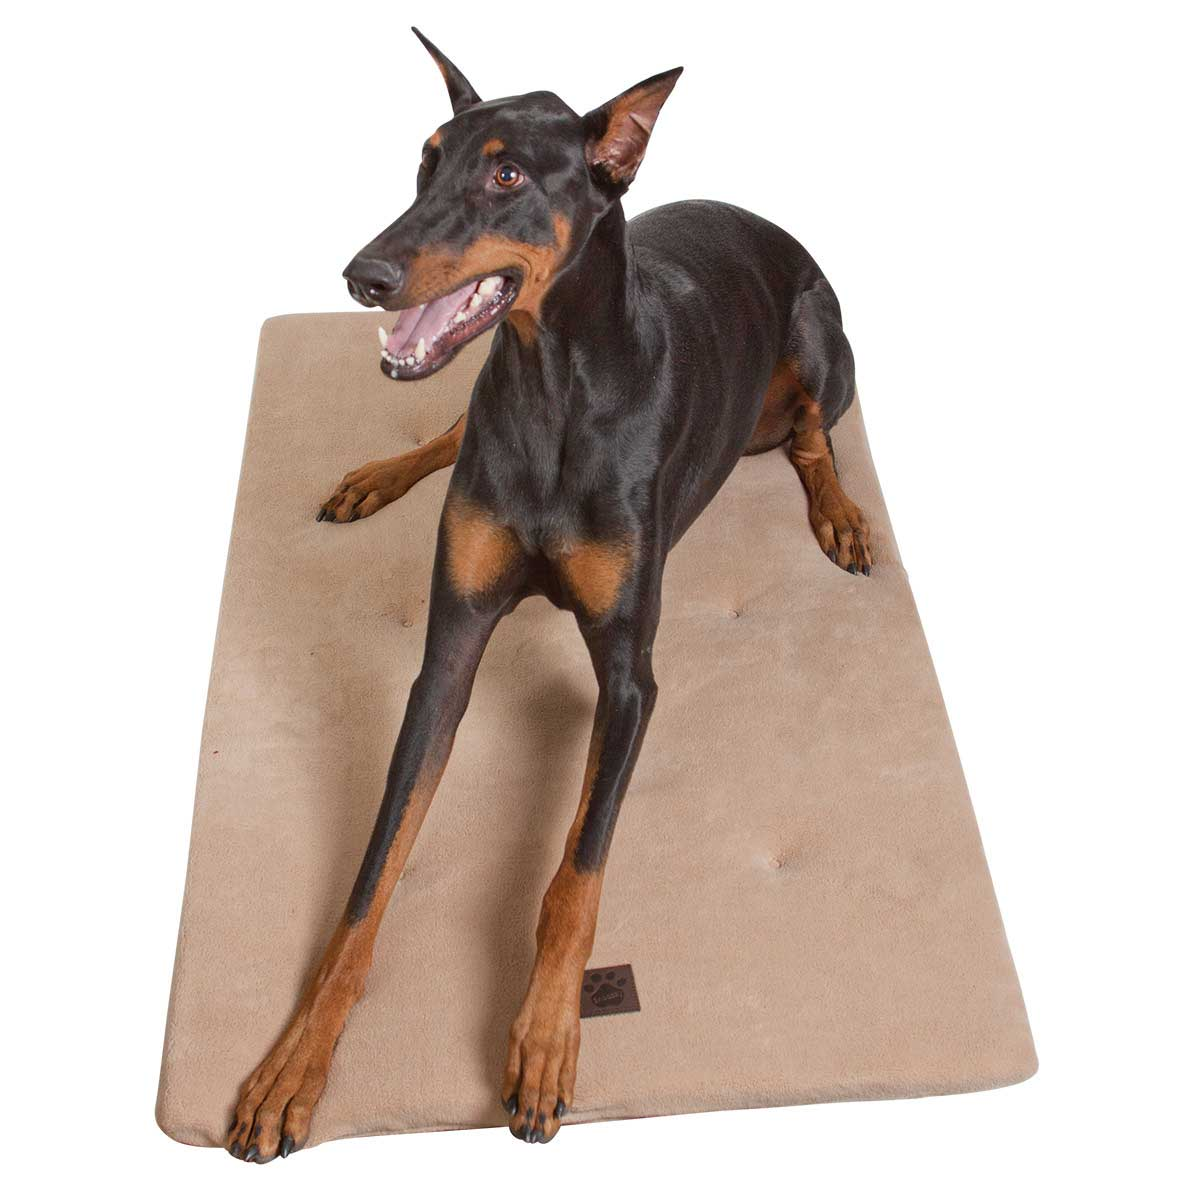 Snoozzy Tan Dog Mattress - 22.75 inches by 16 inches